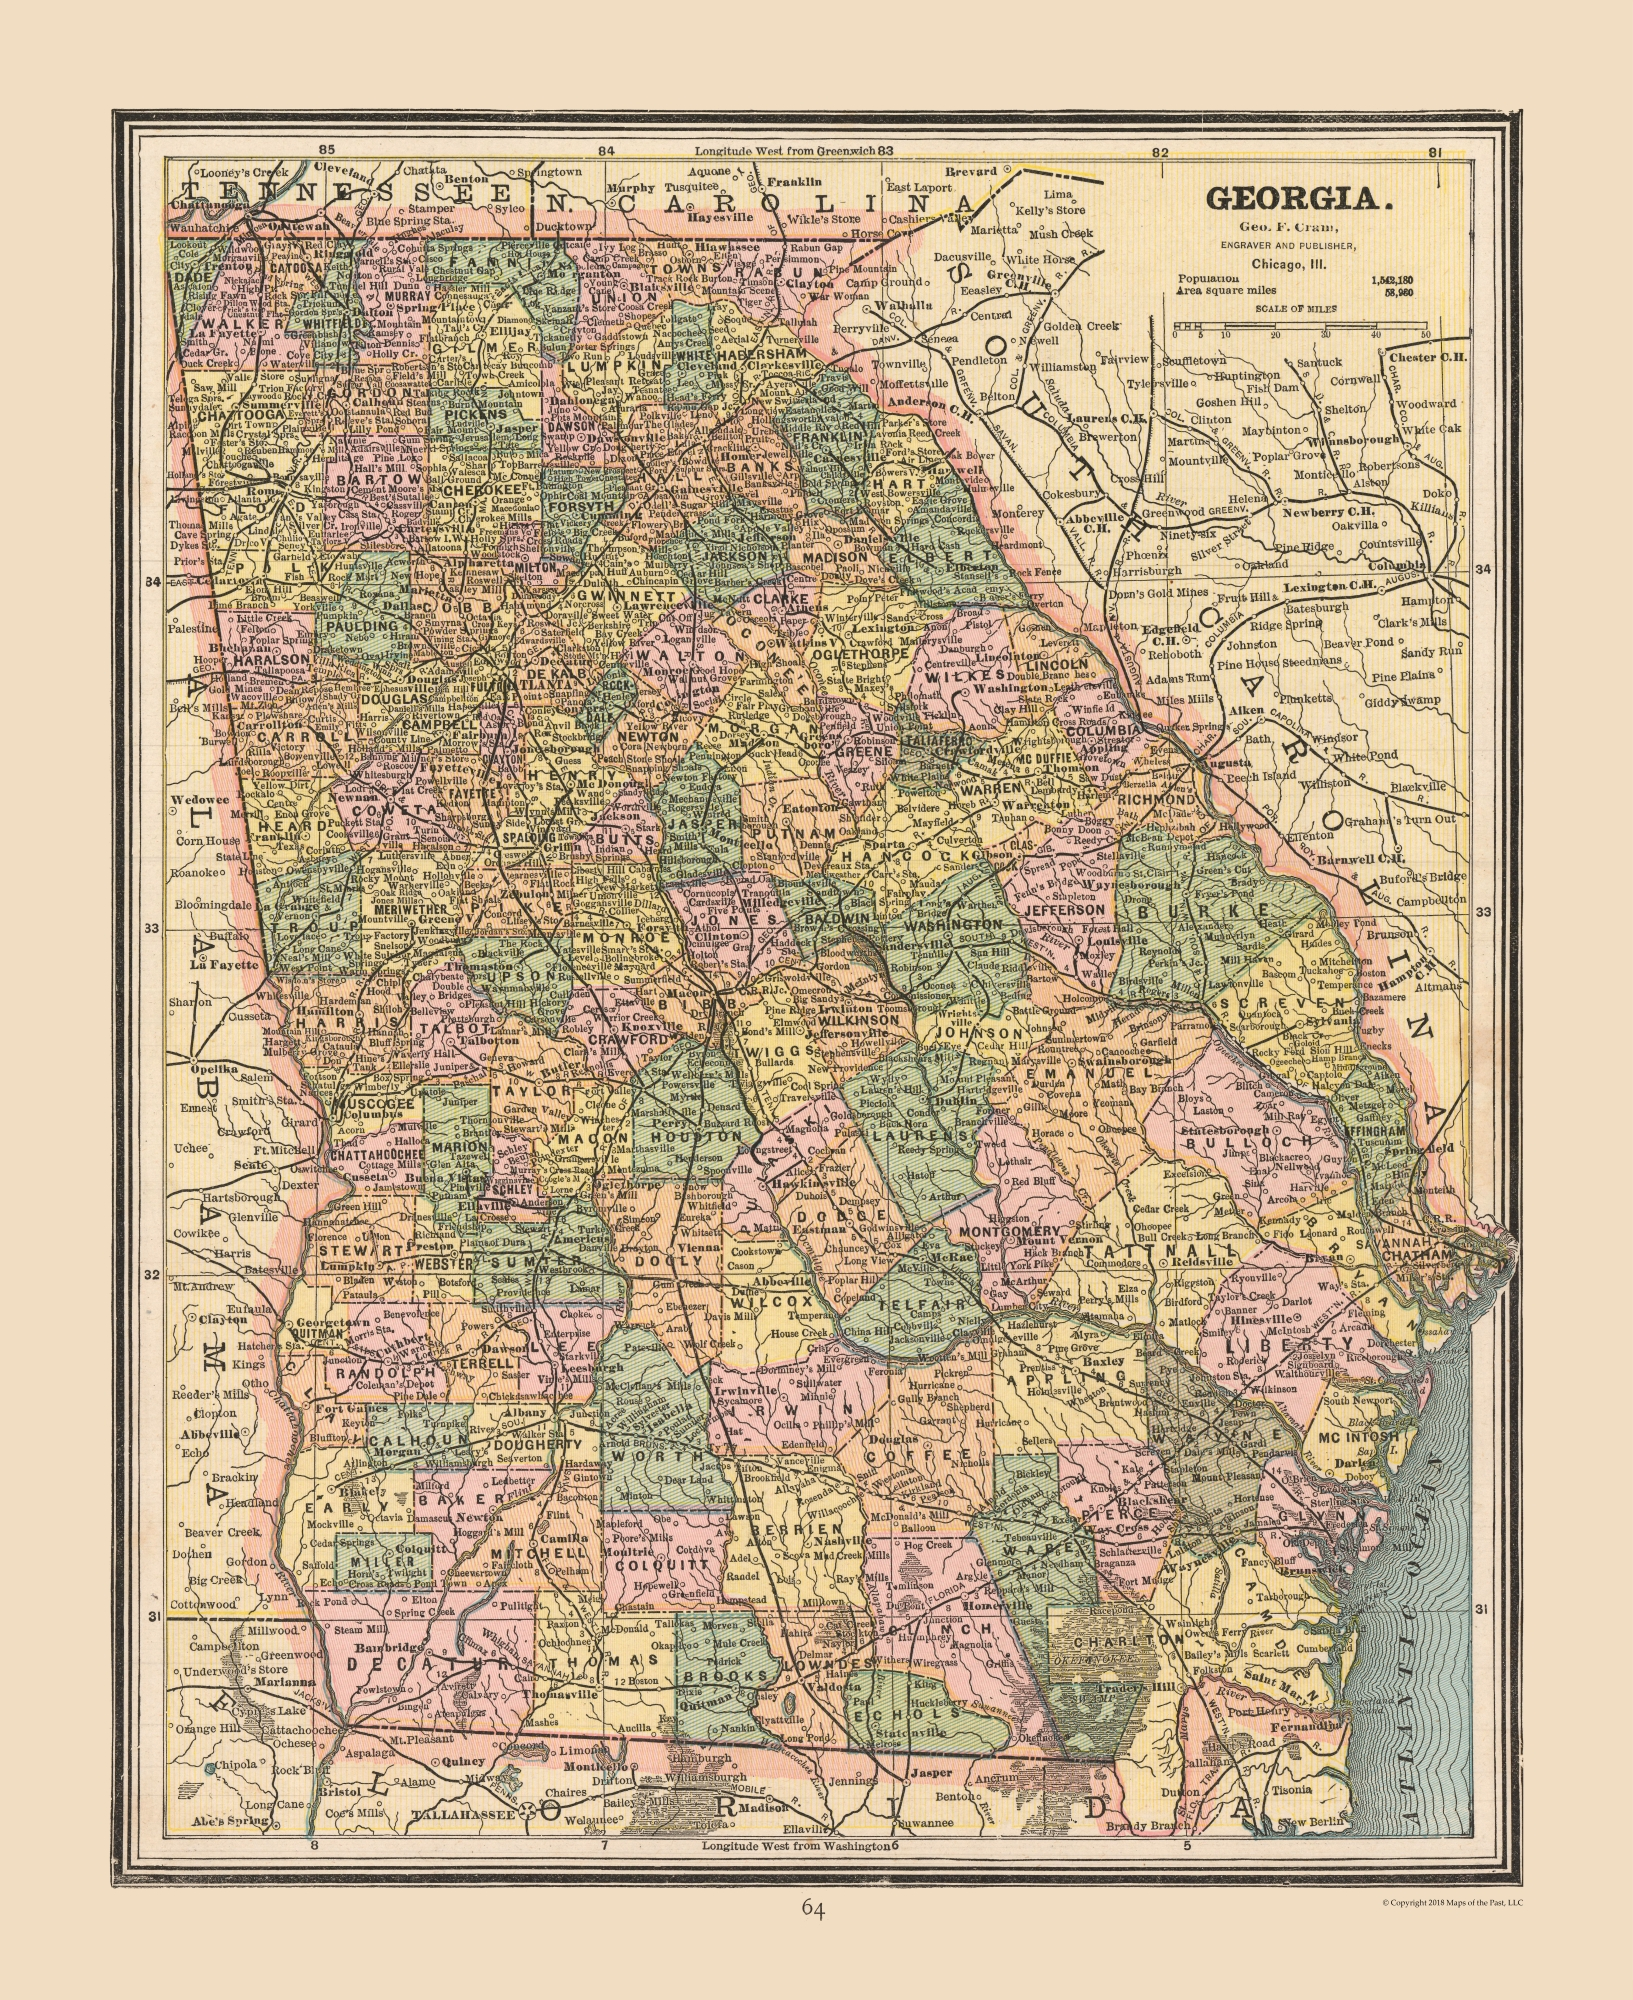 Map Of Georgia United States.Old State Maps Georgia United States Cram S Atlas 1888 23 X 28 17